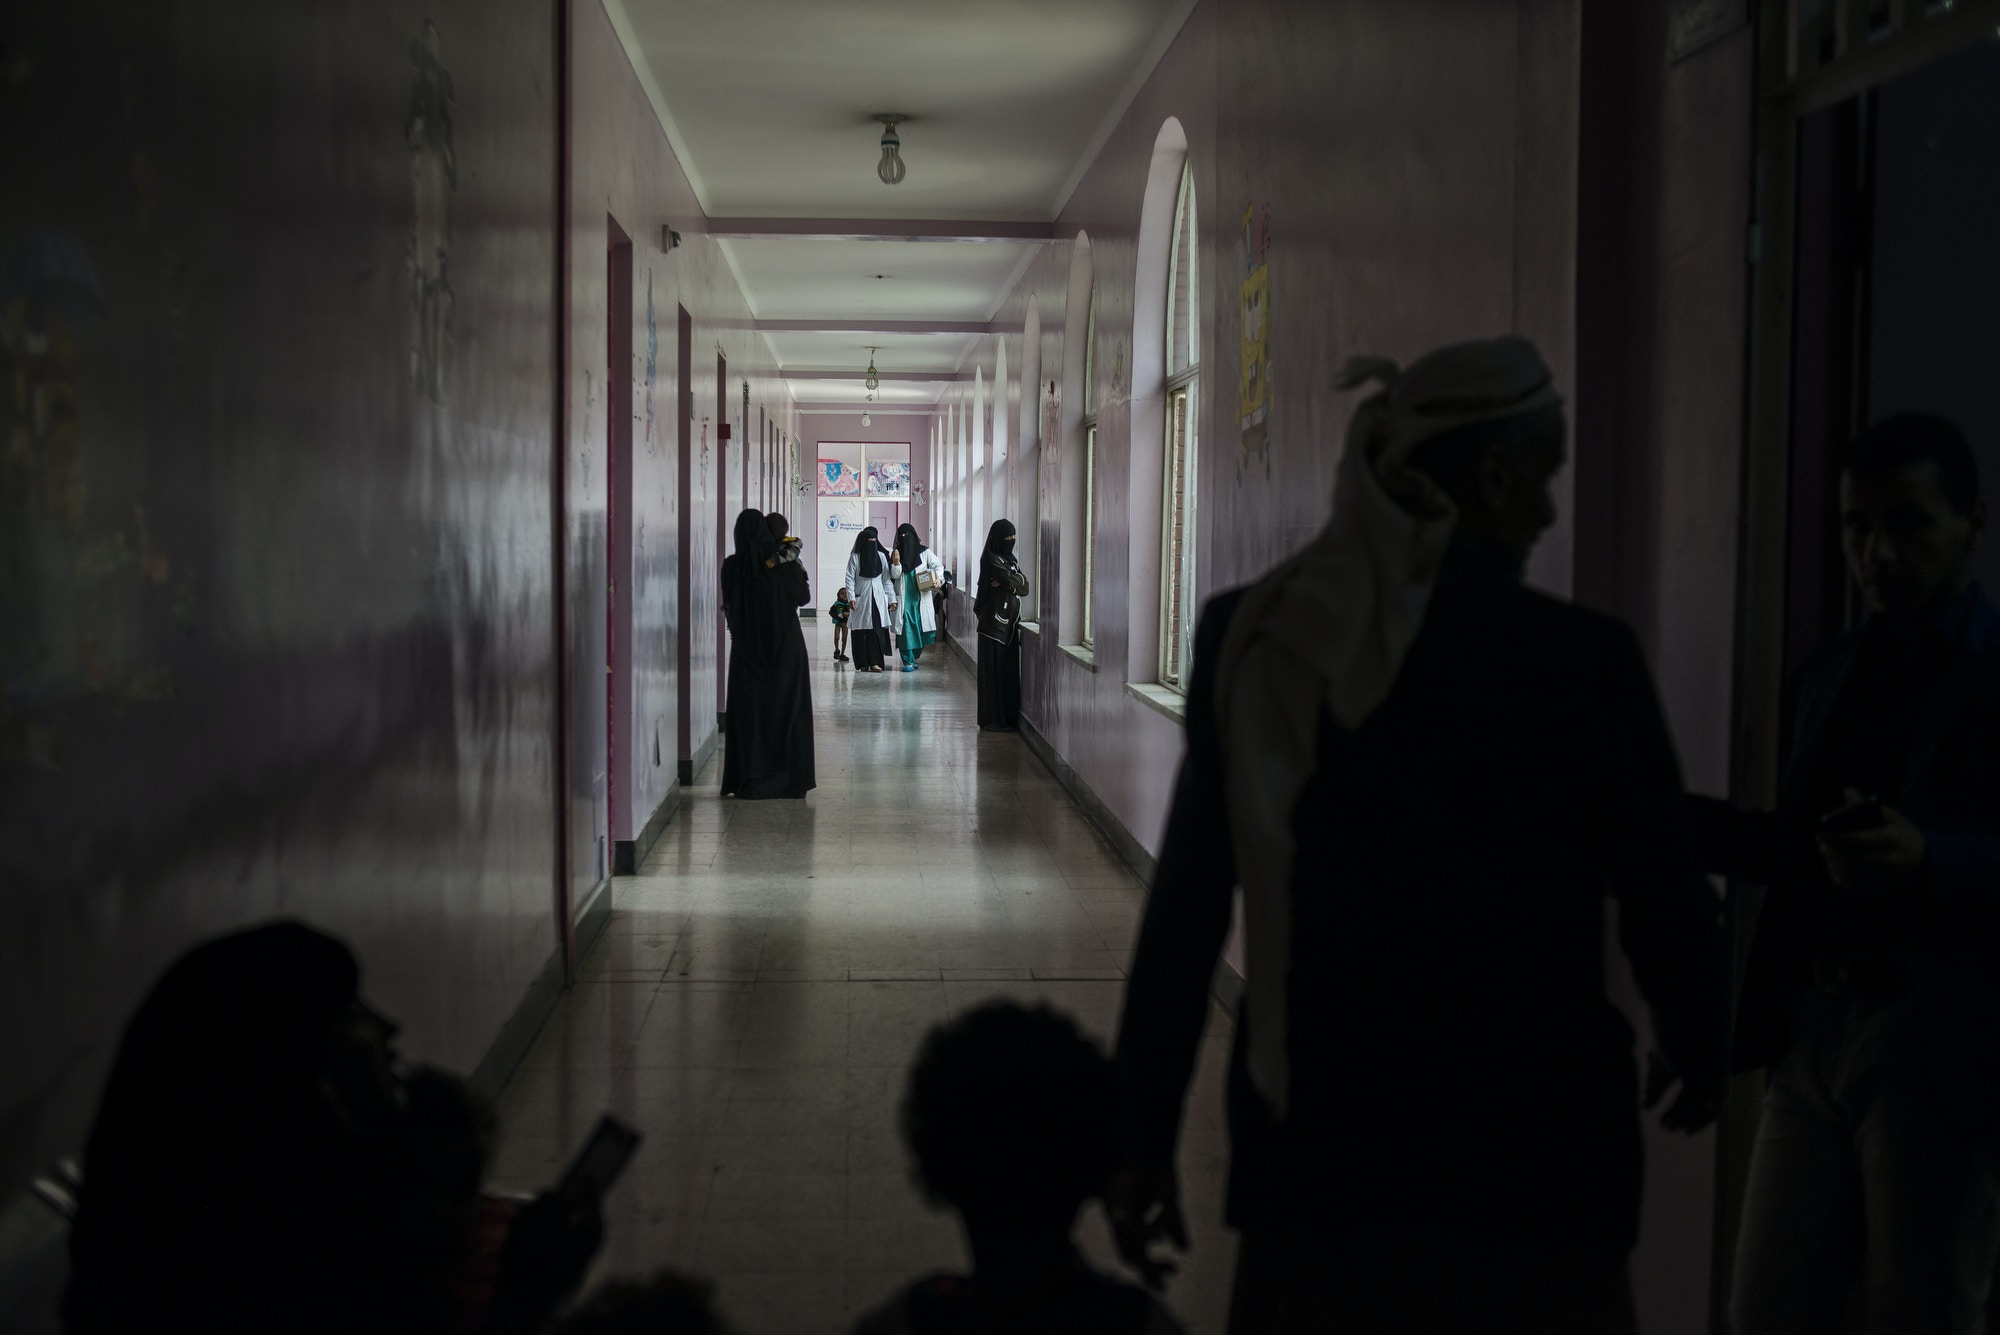 Yemeni families and nurses walk through the malnutrition wing on May 4, 2018 at Sabaeen Hospital in Sana'a, Yemen. Most hospitals in the north are functioning at a minimal level, their staff not paid in months, and are constantly short on supplies.